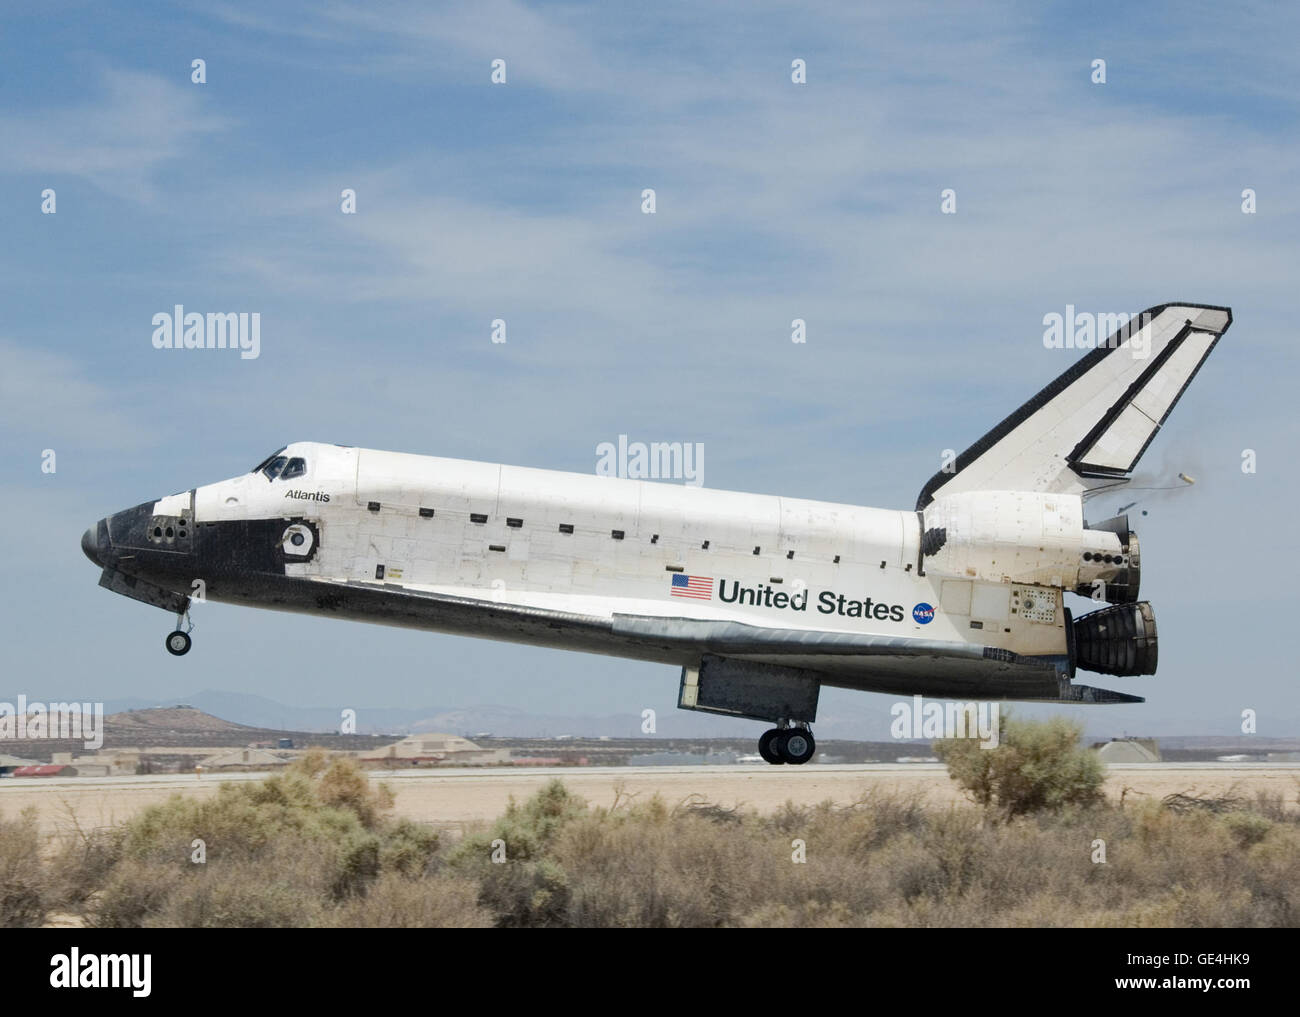 Space Shuttle Atlantis' STS-117 Mission lands at Edwards Air Force Base after 14 days in orbit. Photo credit: - Stock Image